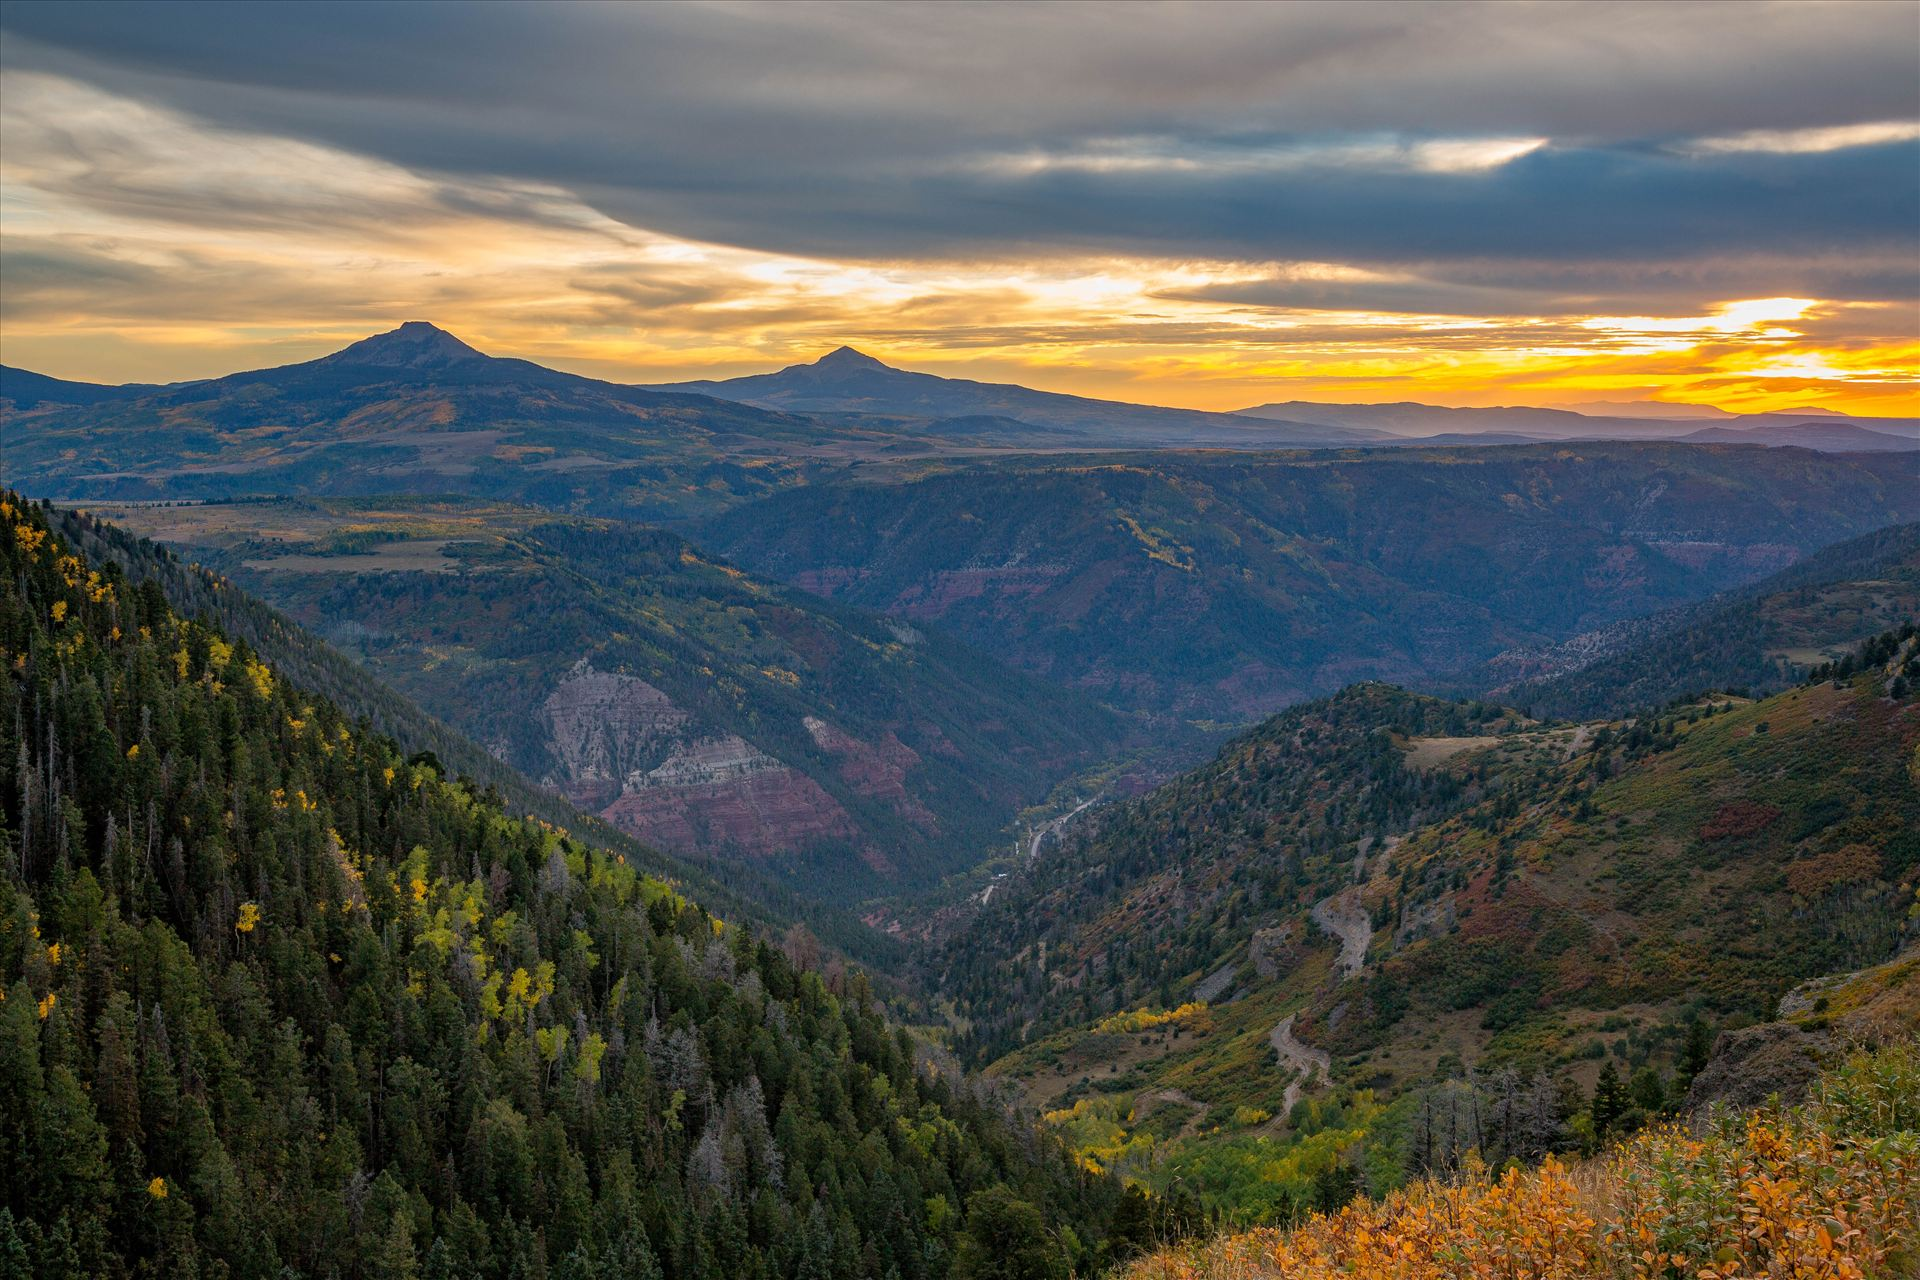 Last Dollar Road Sunset 2 The sun has almost faded on a quiet, secluded spot from Last Dollar Road, outside of Telluride, Colorado in the fall. by Scott Smith Photos